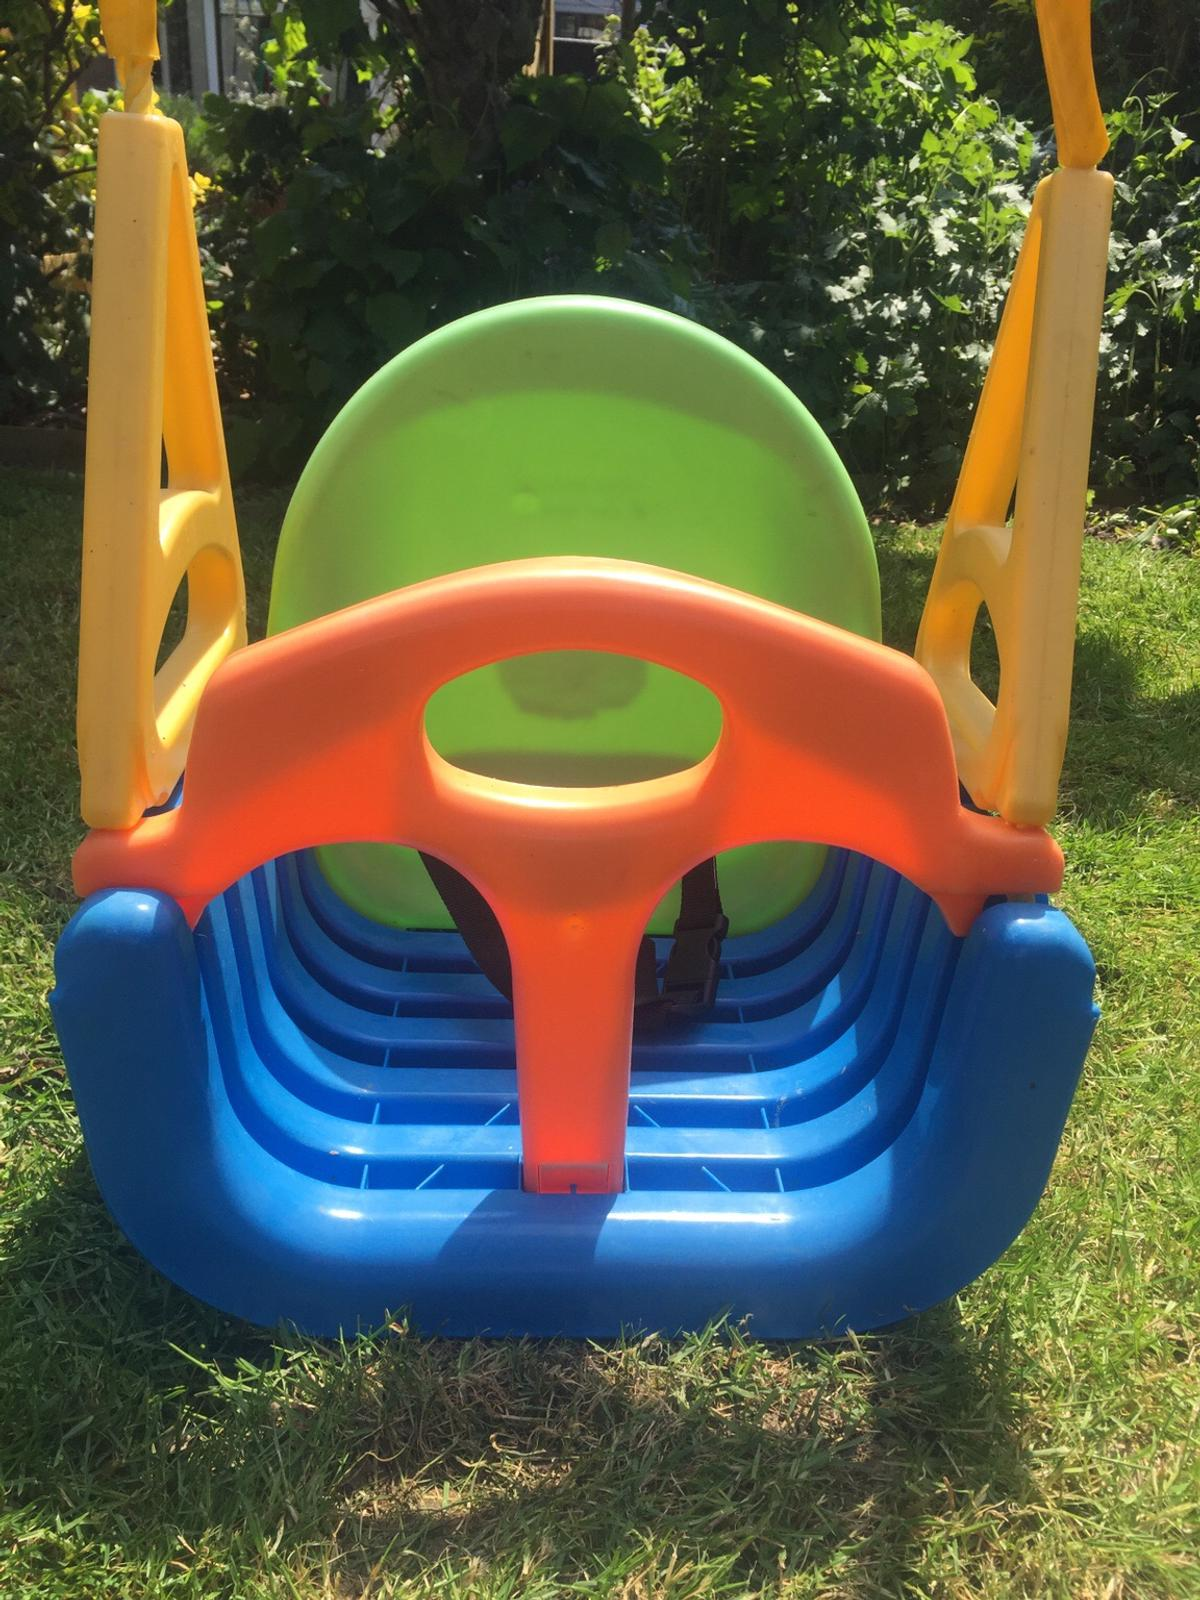 Multi Way Swing Seat In Cv34 Warwick For 8 00 For Sale Shpock